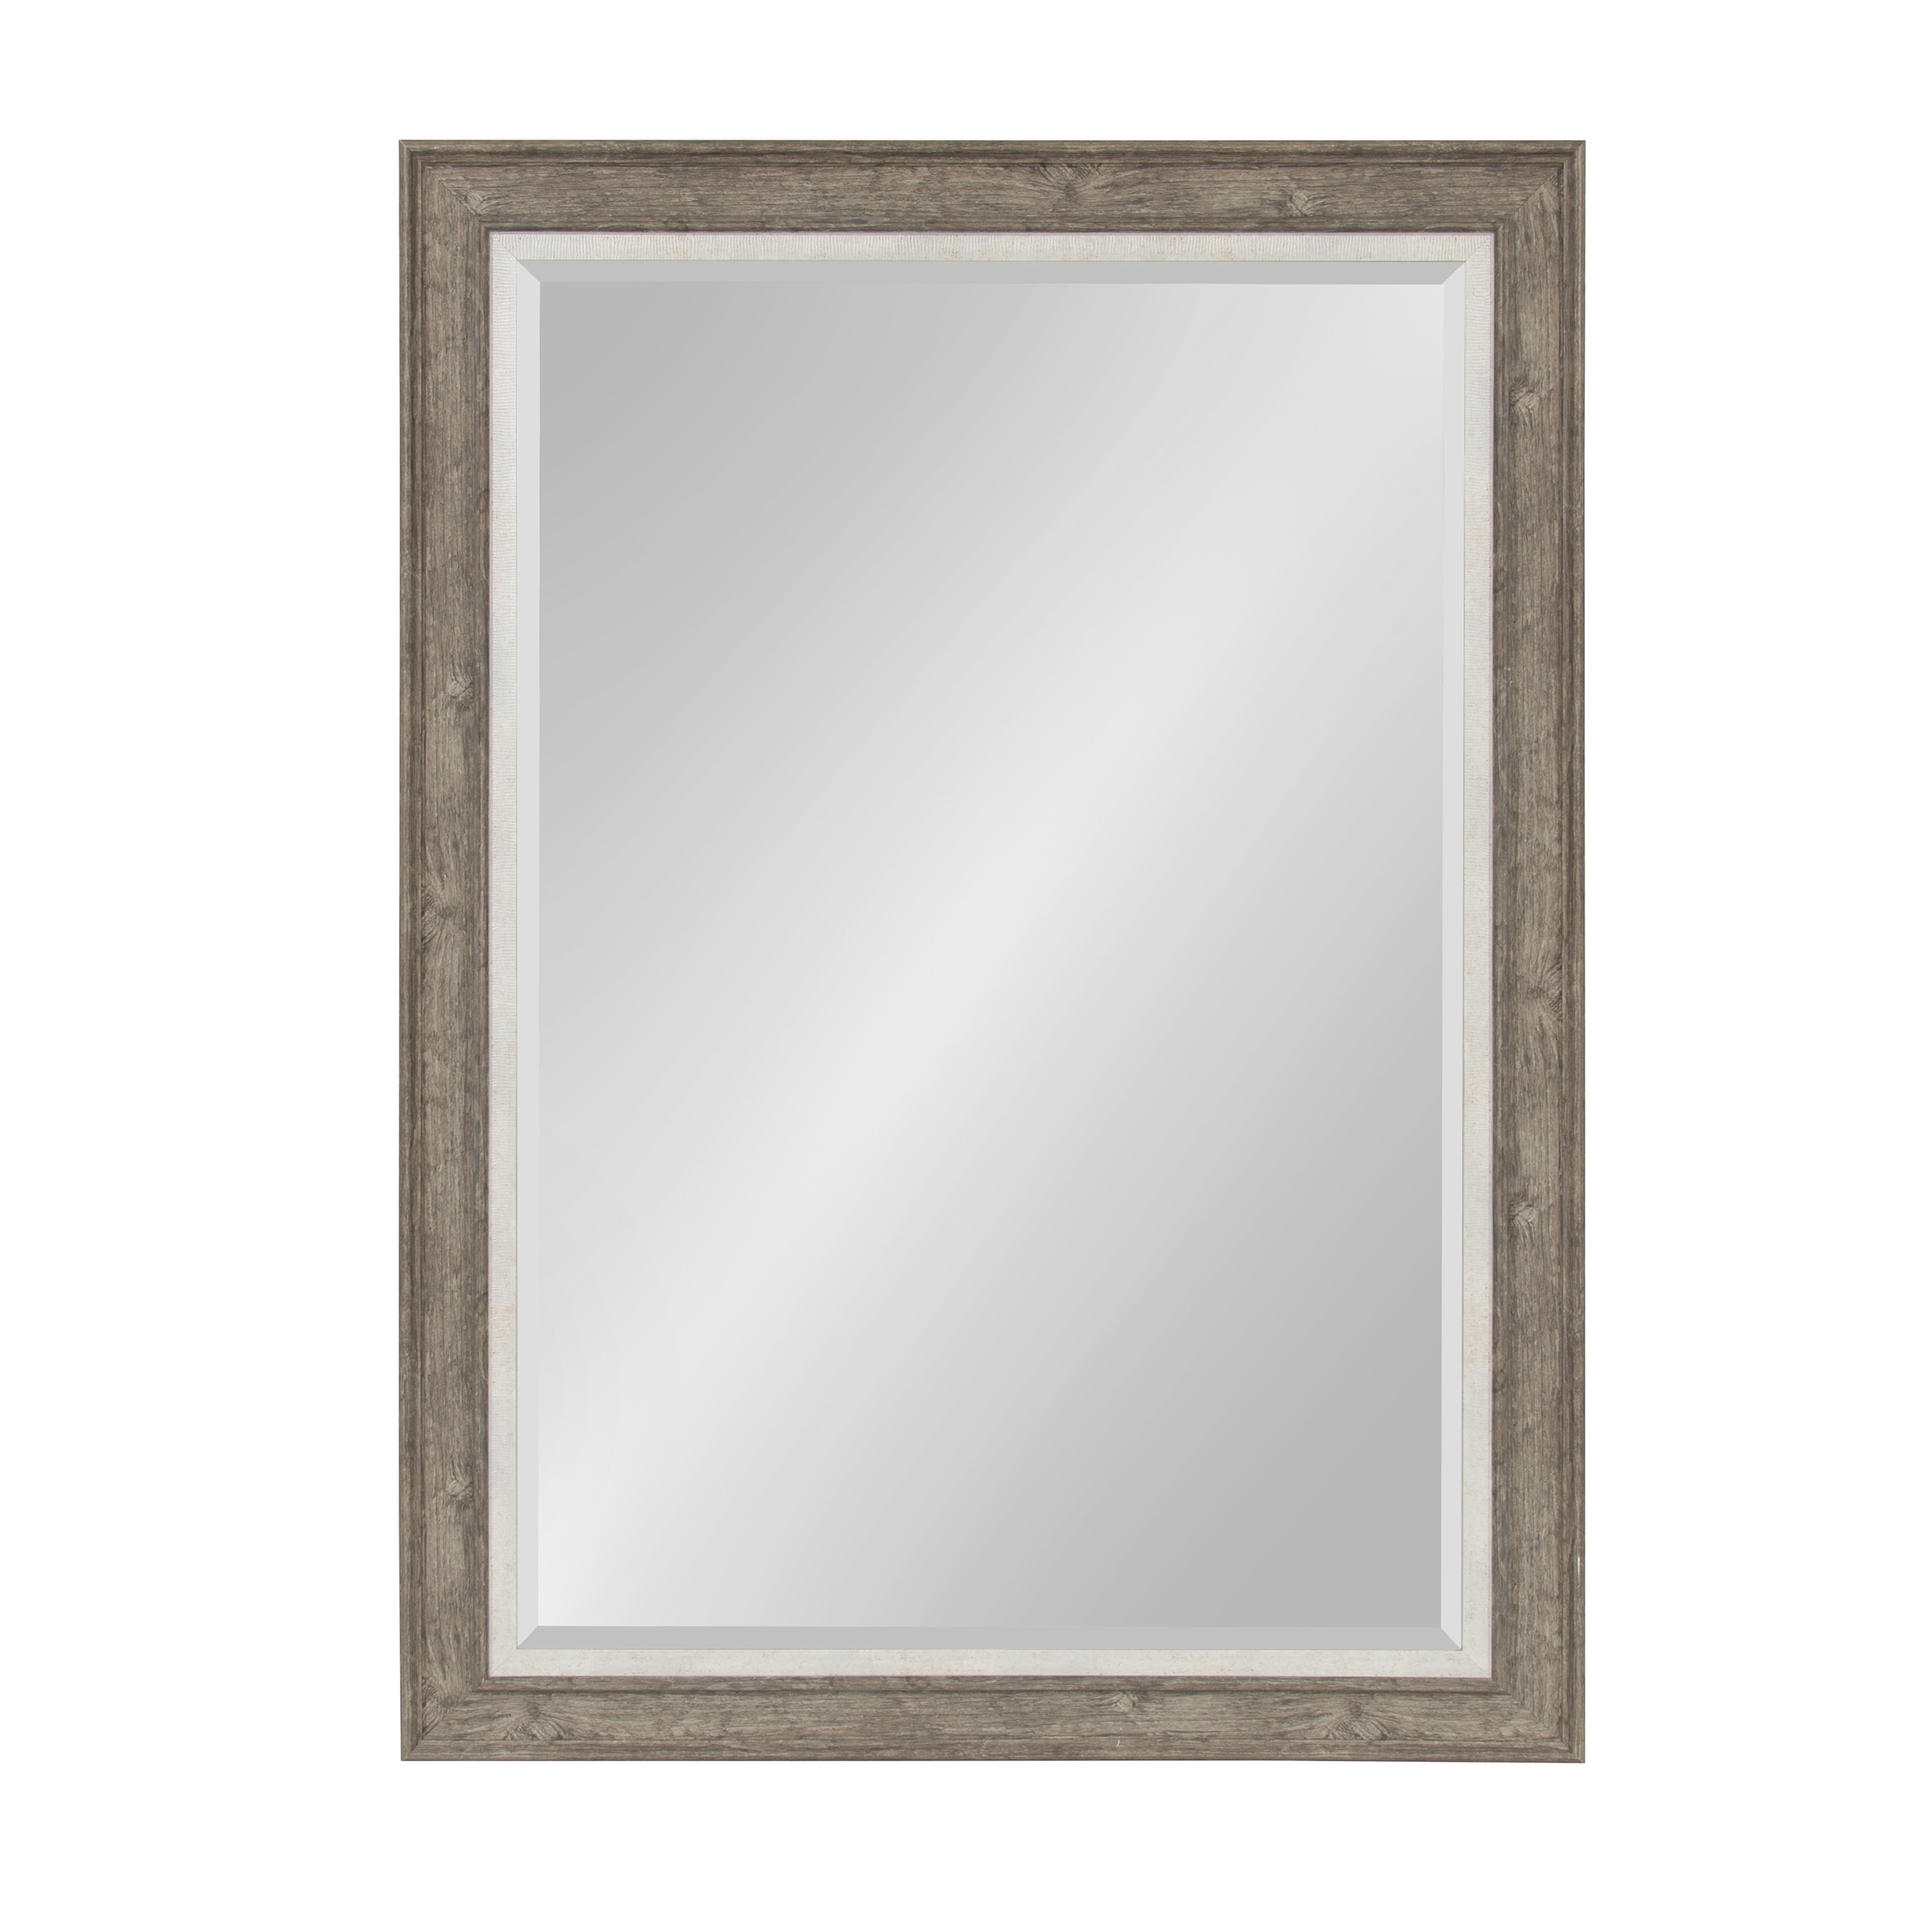 Shop Kate and Laurel - Woodway Large Framed Wall Mirror - rustic ...